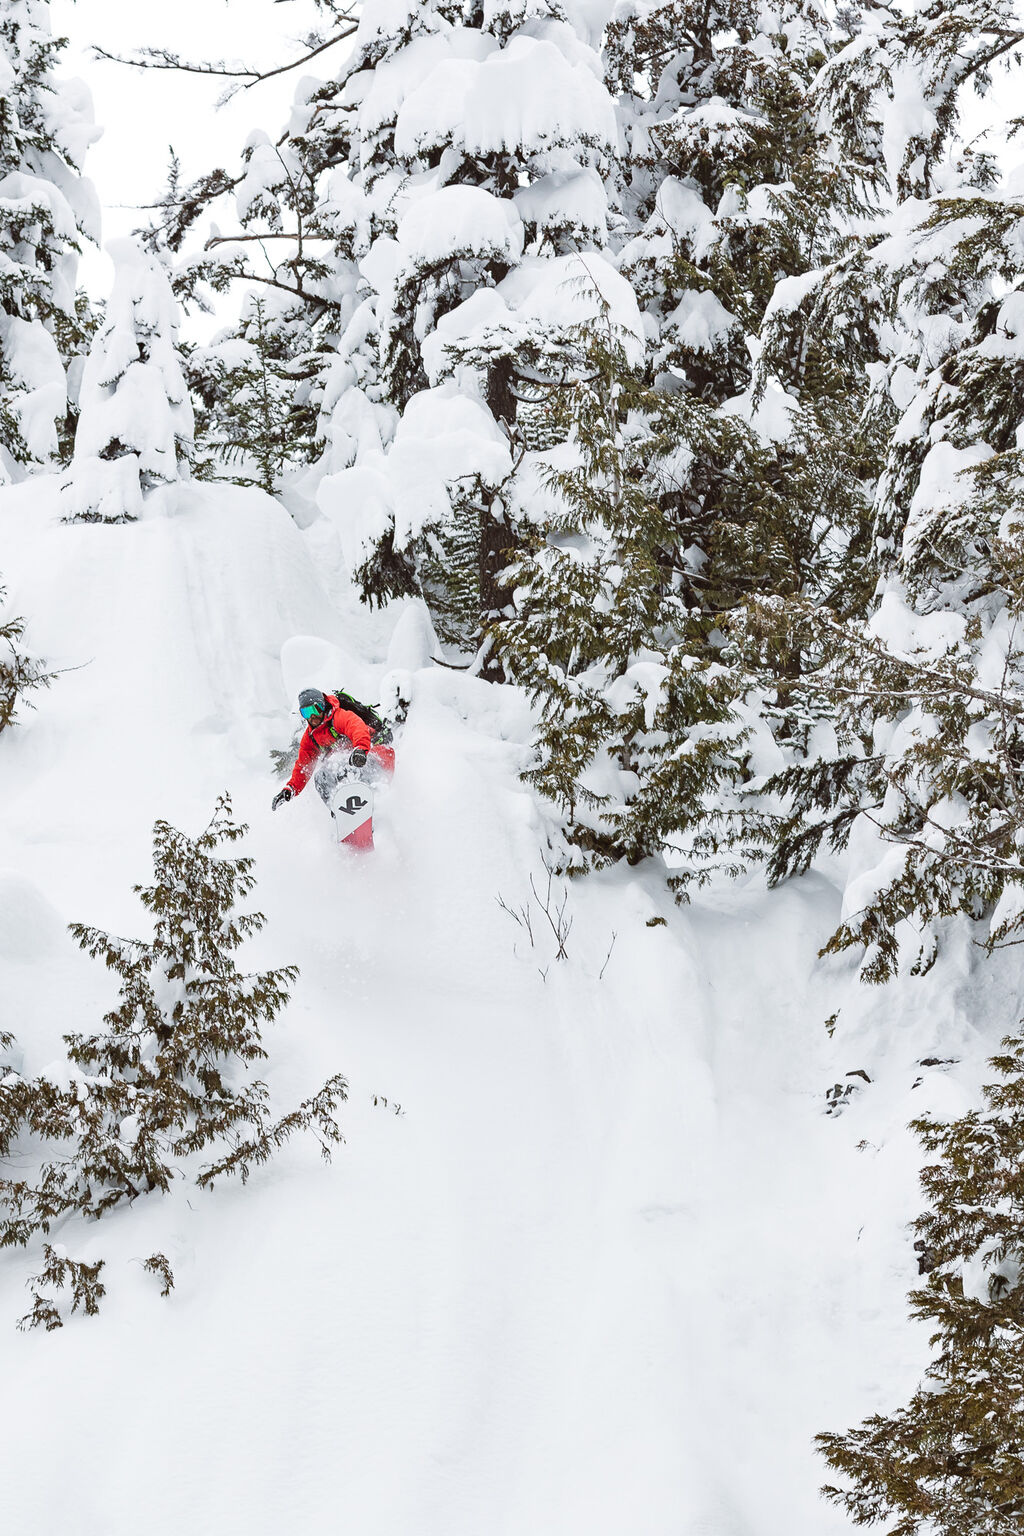 coming through the trees in the pow